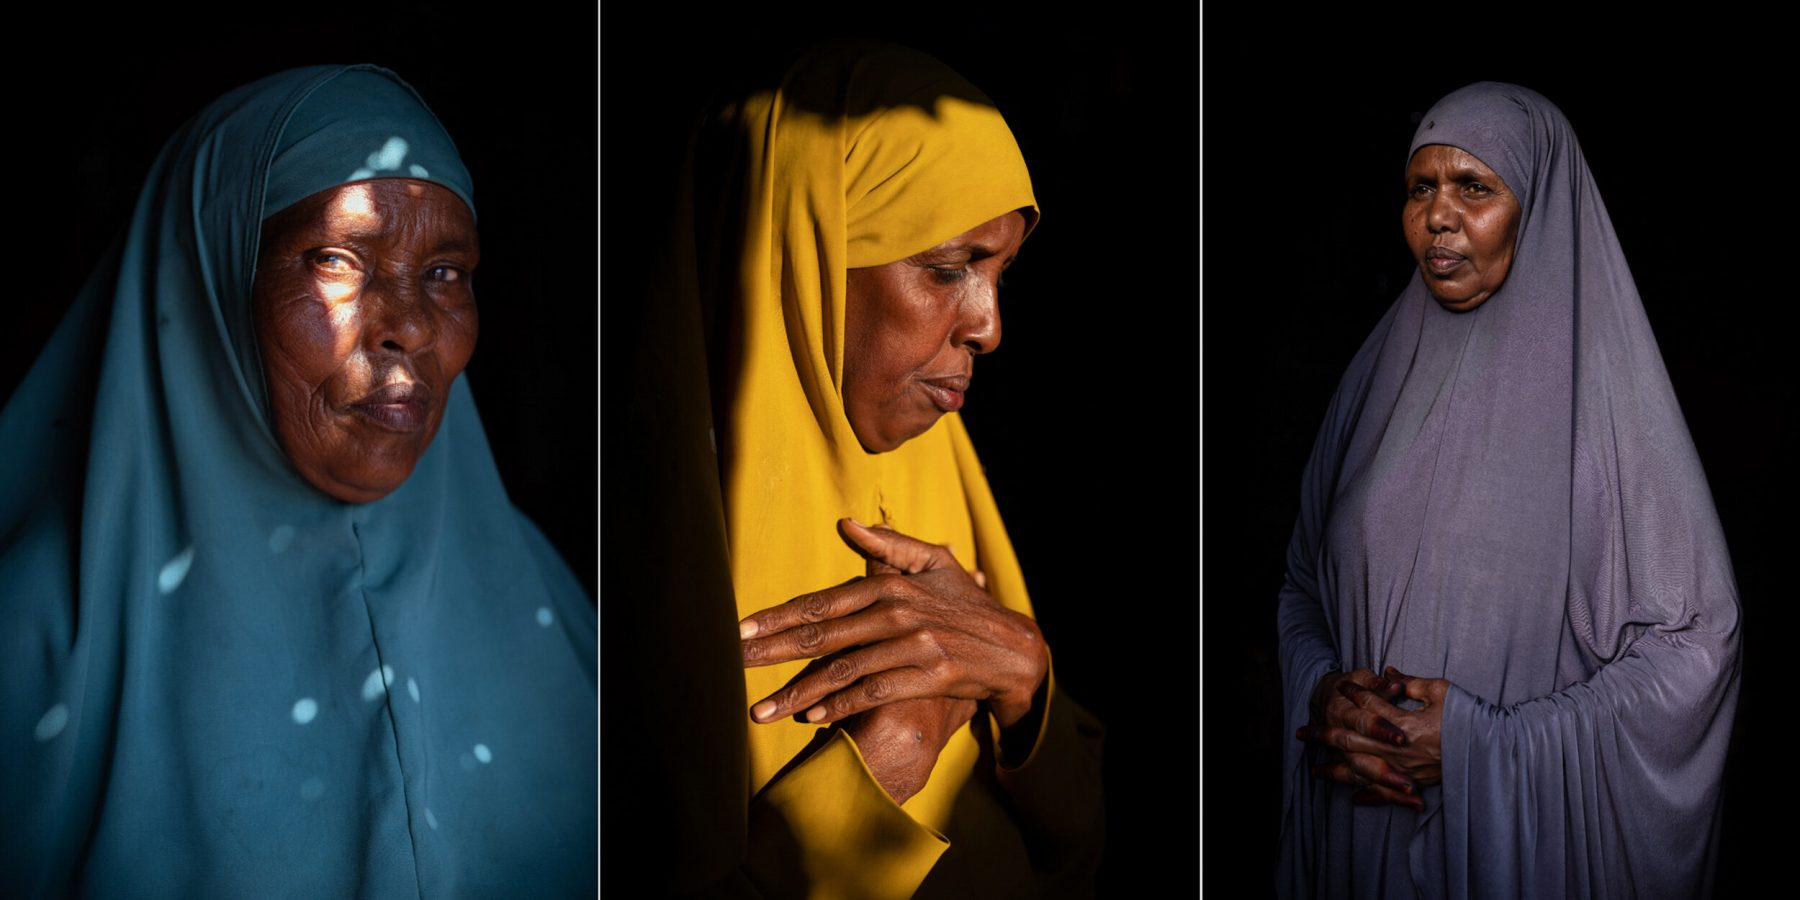 Portrait color photograph of 3 women by Nichole Sobecki, Somaliland, Somalia